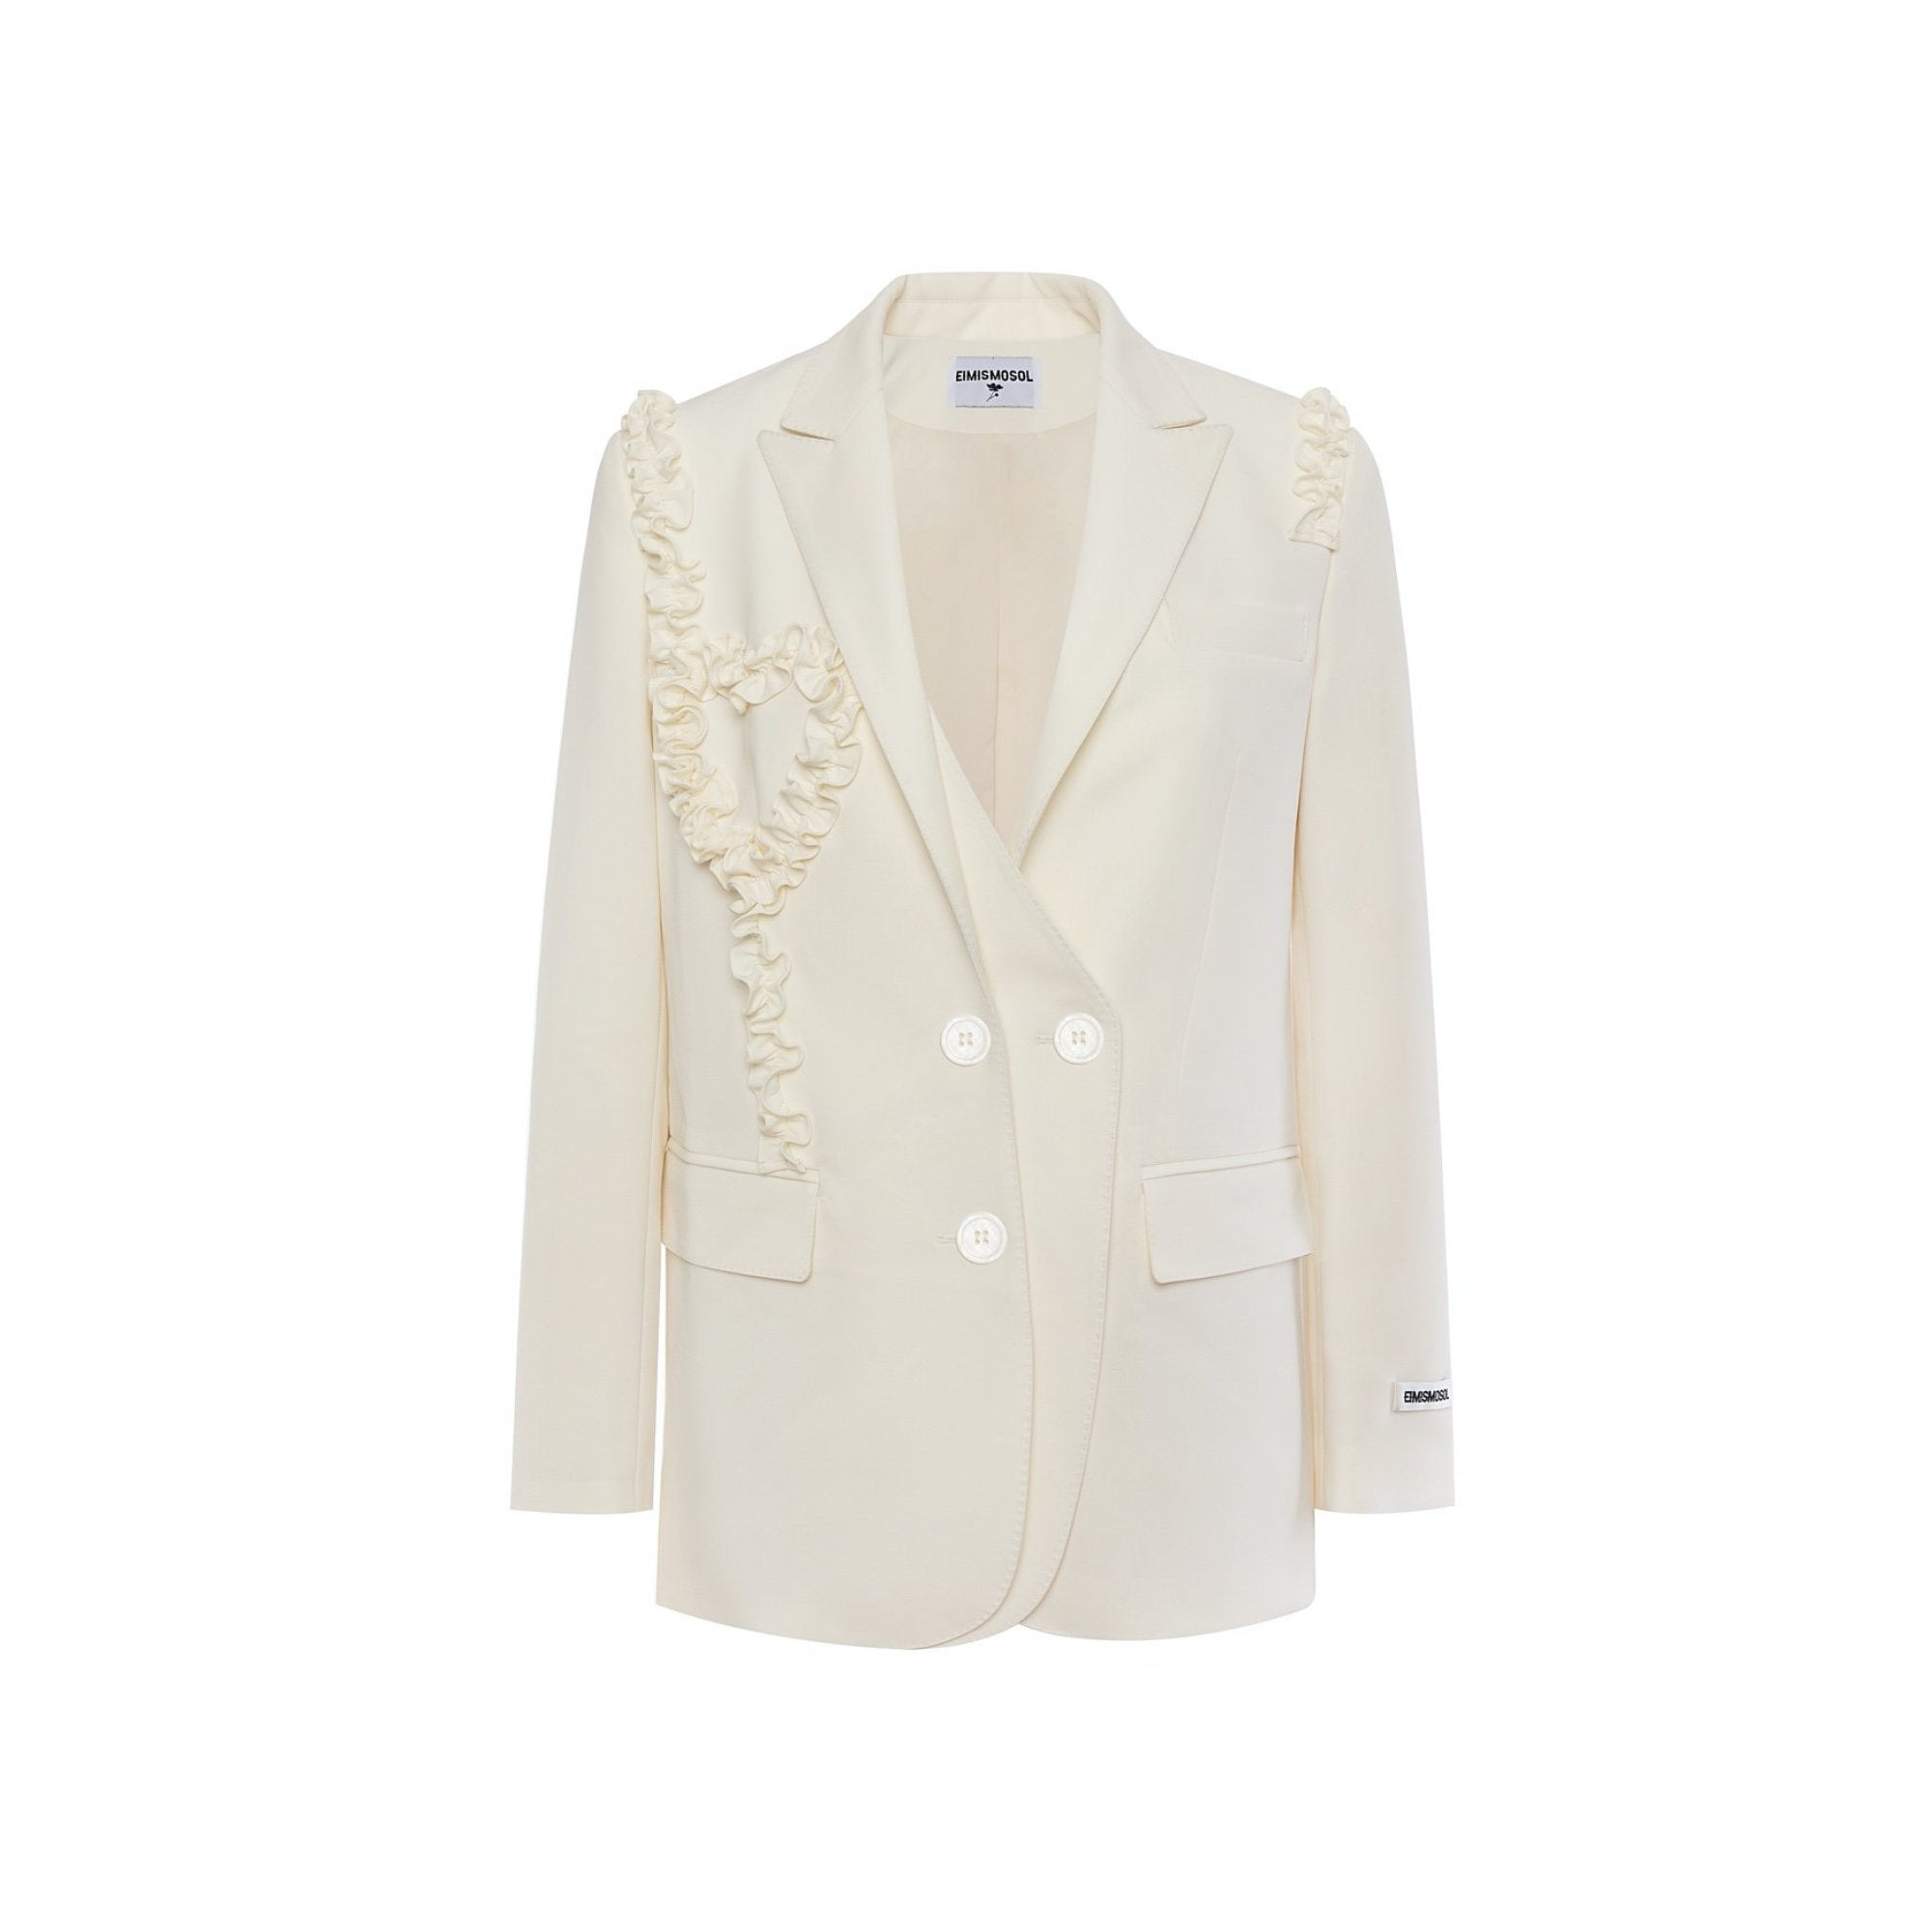 EIMISMOSOL White Ruffle Blazer Jacket | MADA IN CHINA